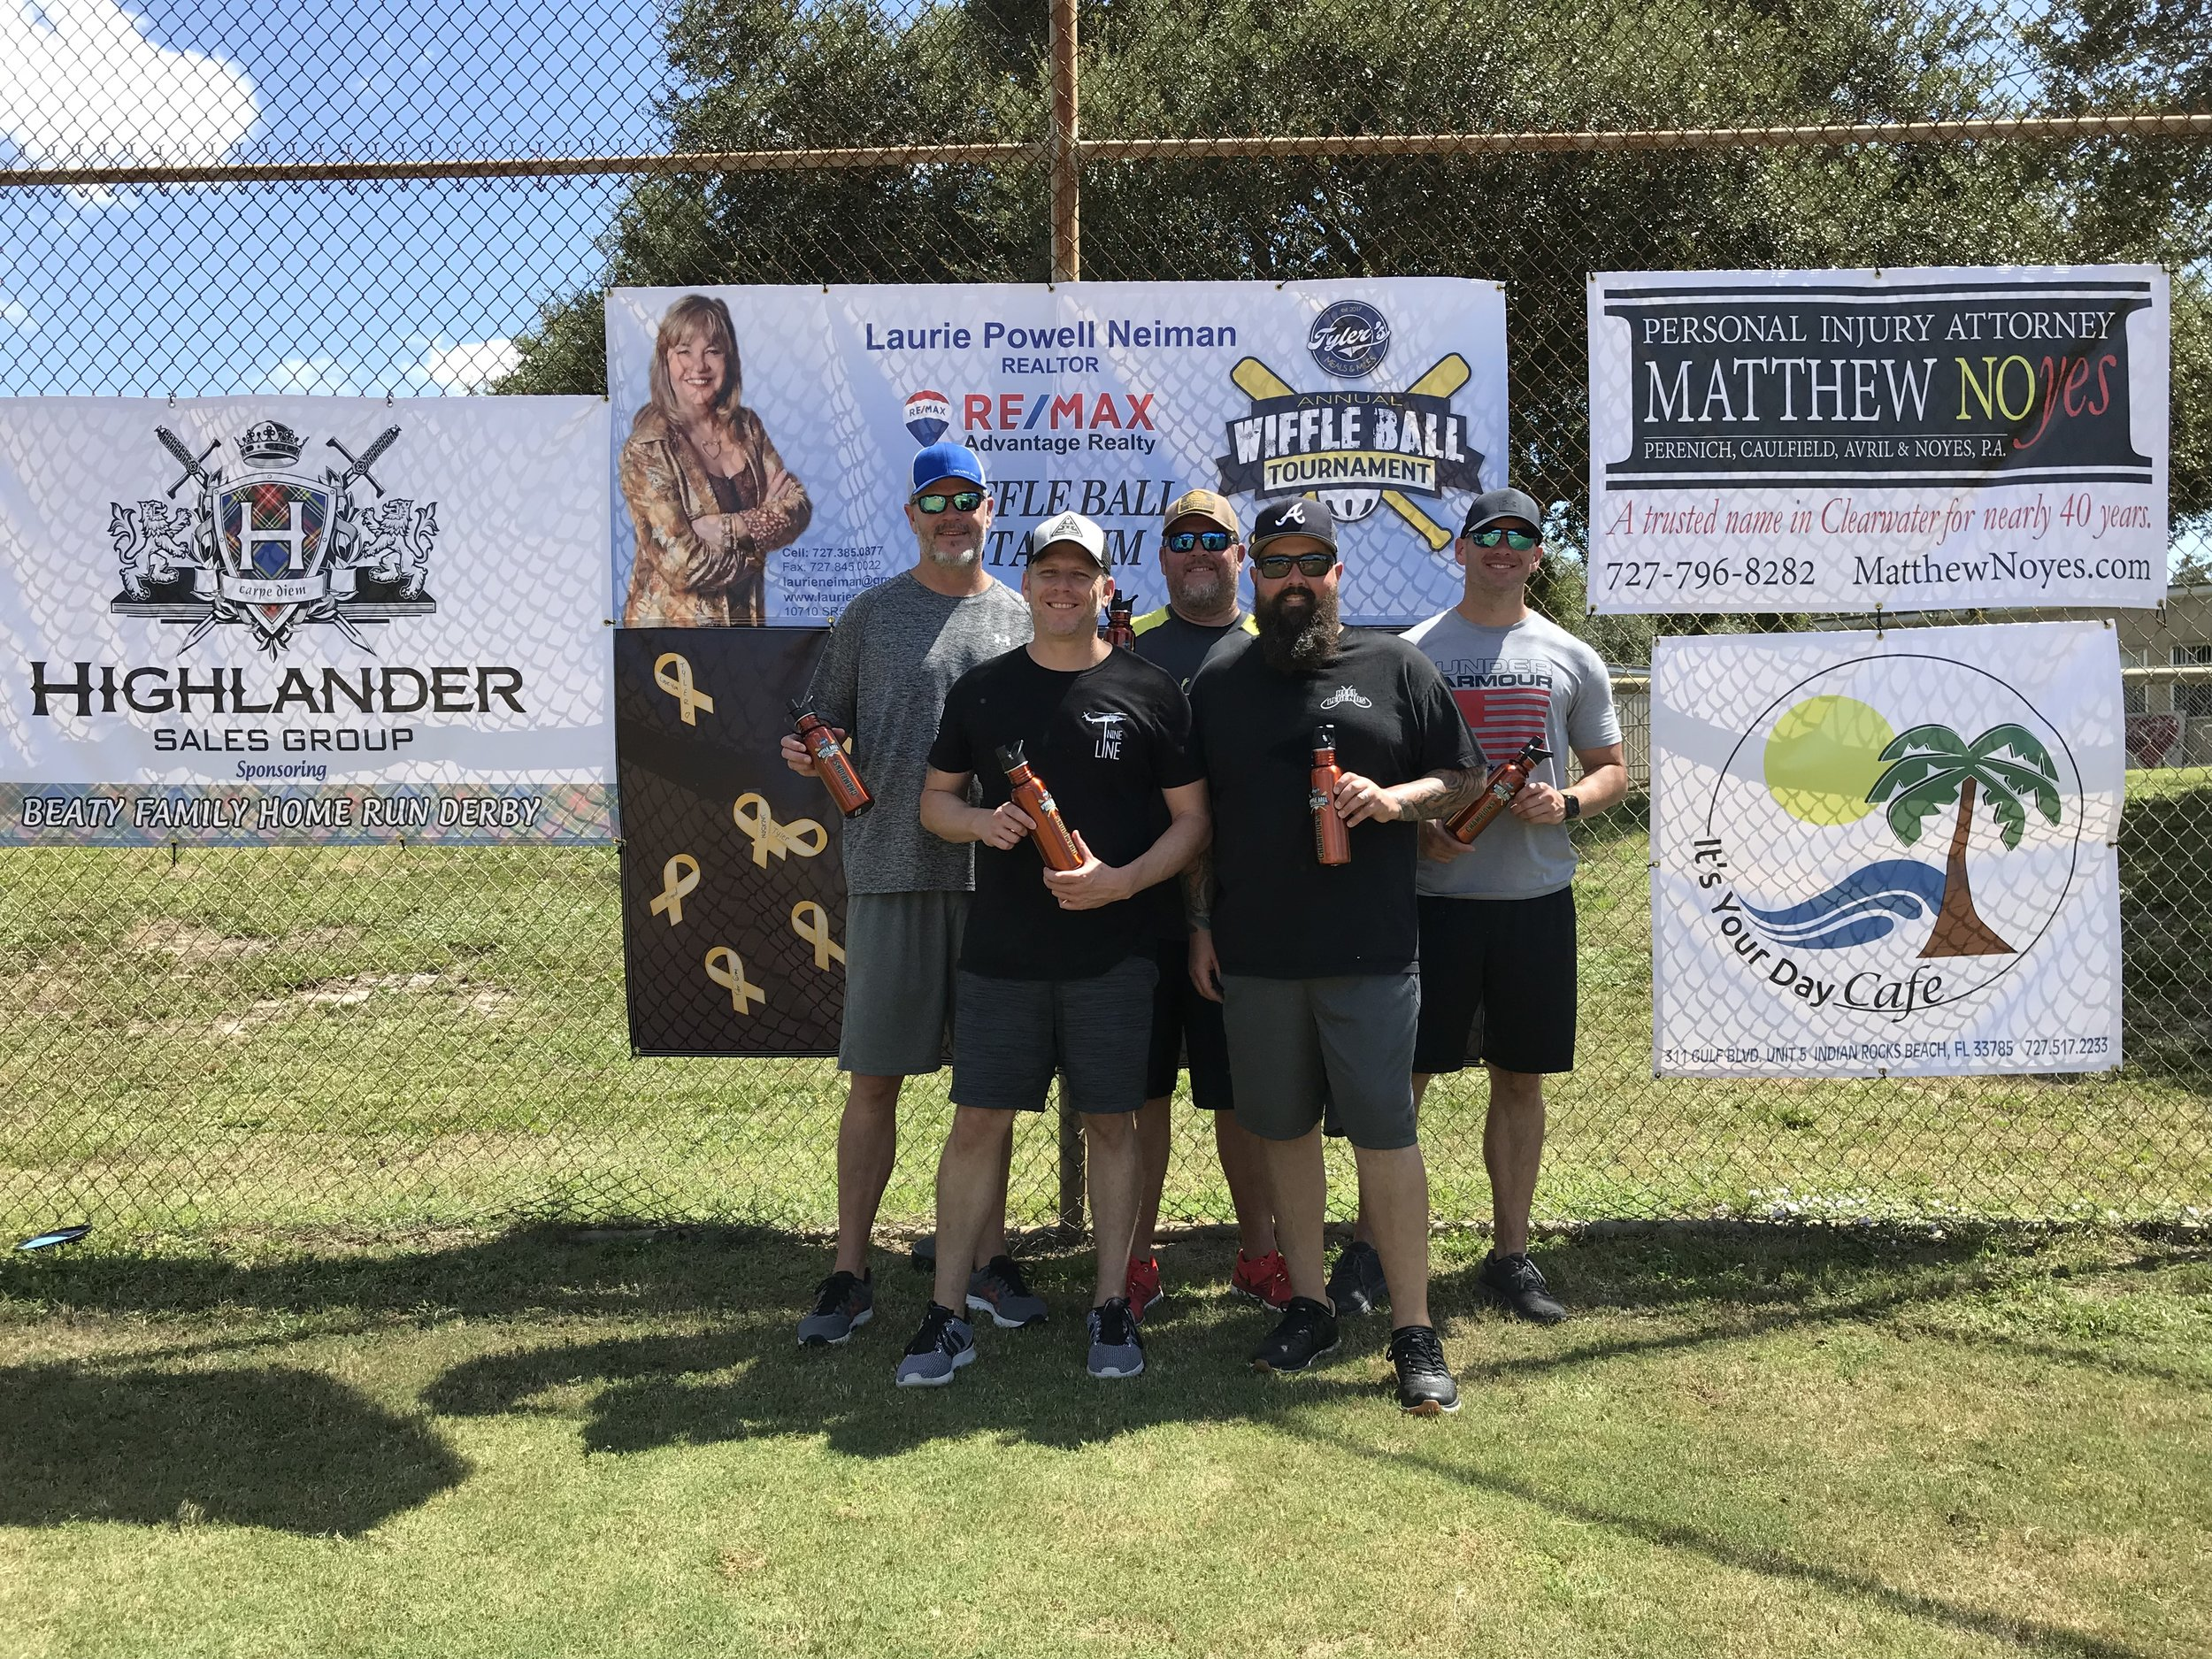 ChampionCHIP - The Enforcers - Tyler's Meals & Miles 2019 - Dunedin, FL  9/21/19